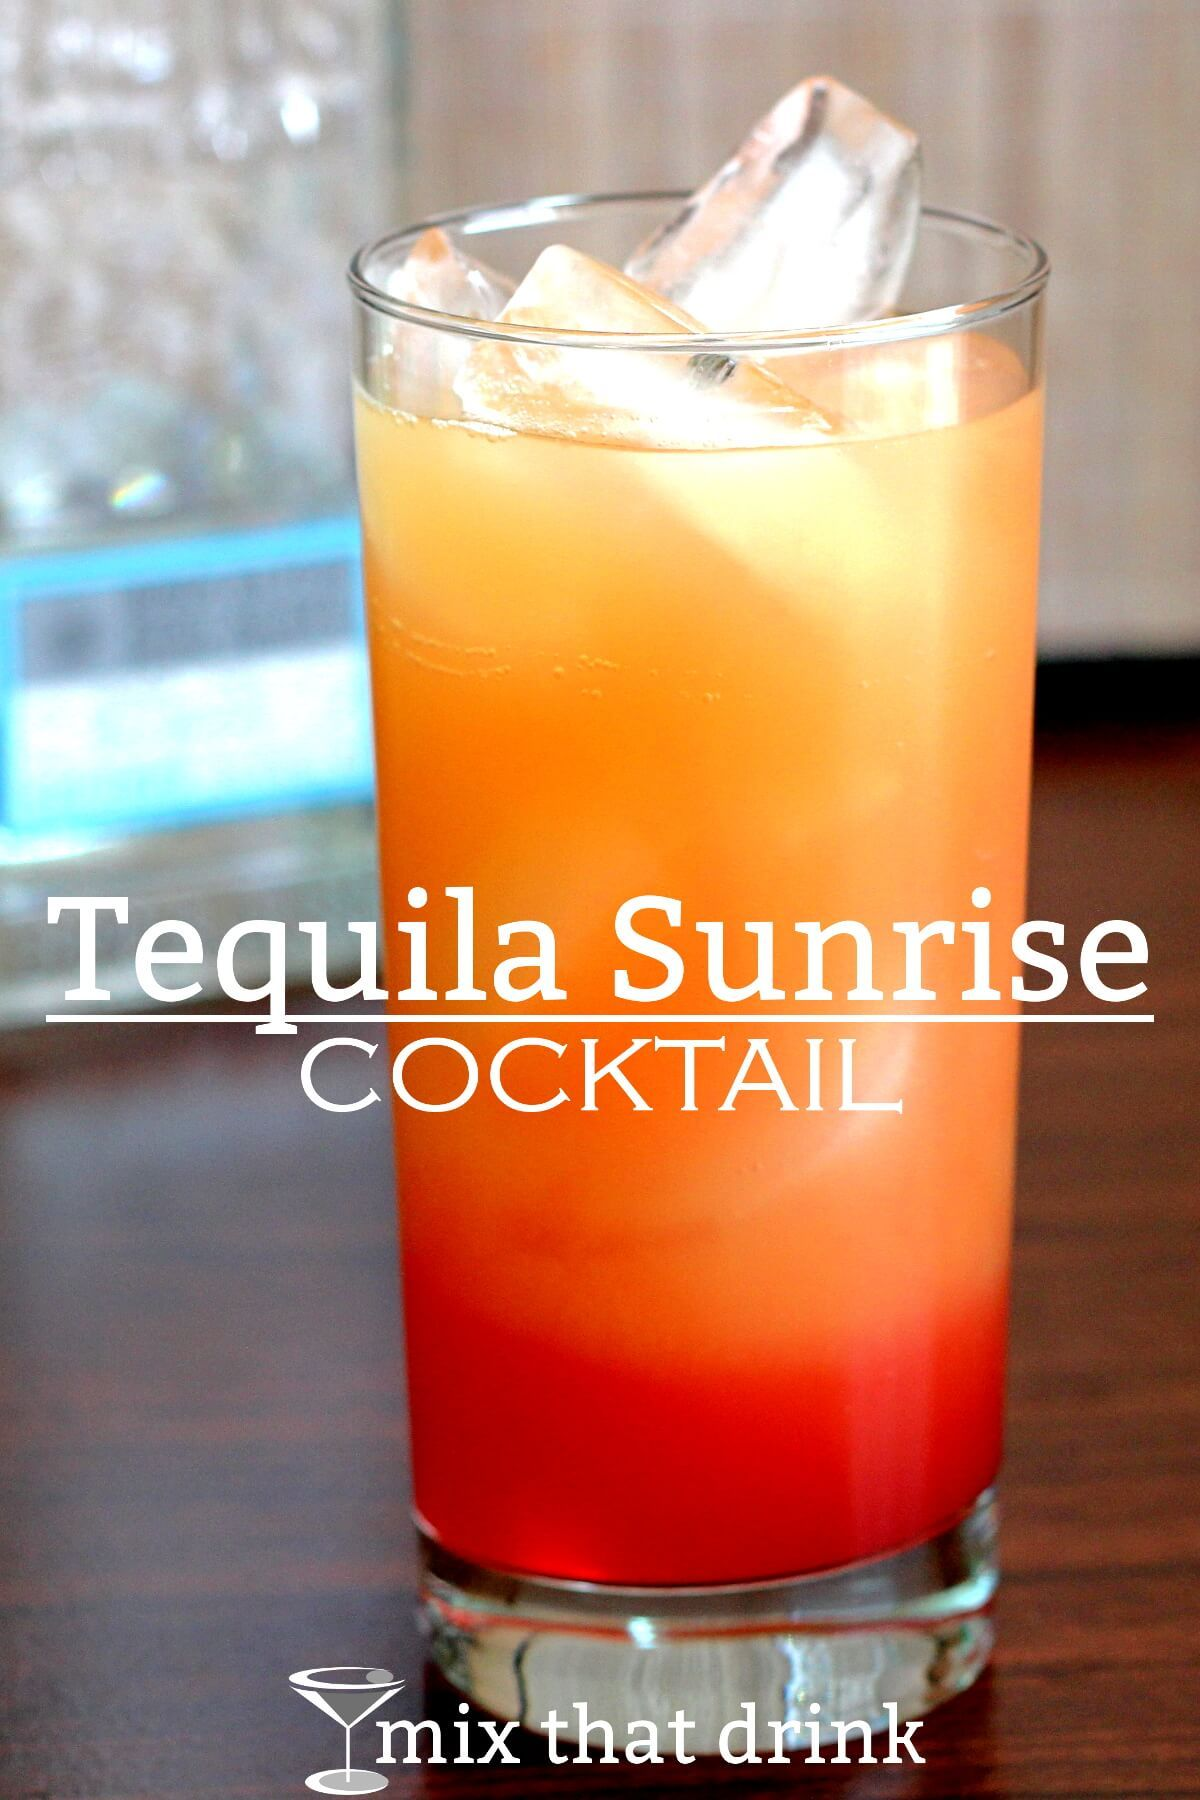 Tequila Sunrise cocktail #tequiladrinks